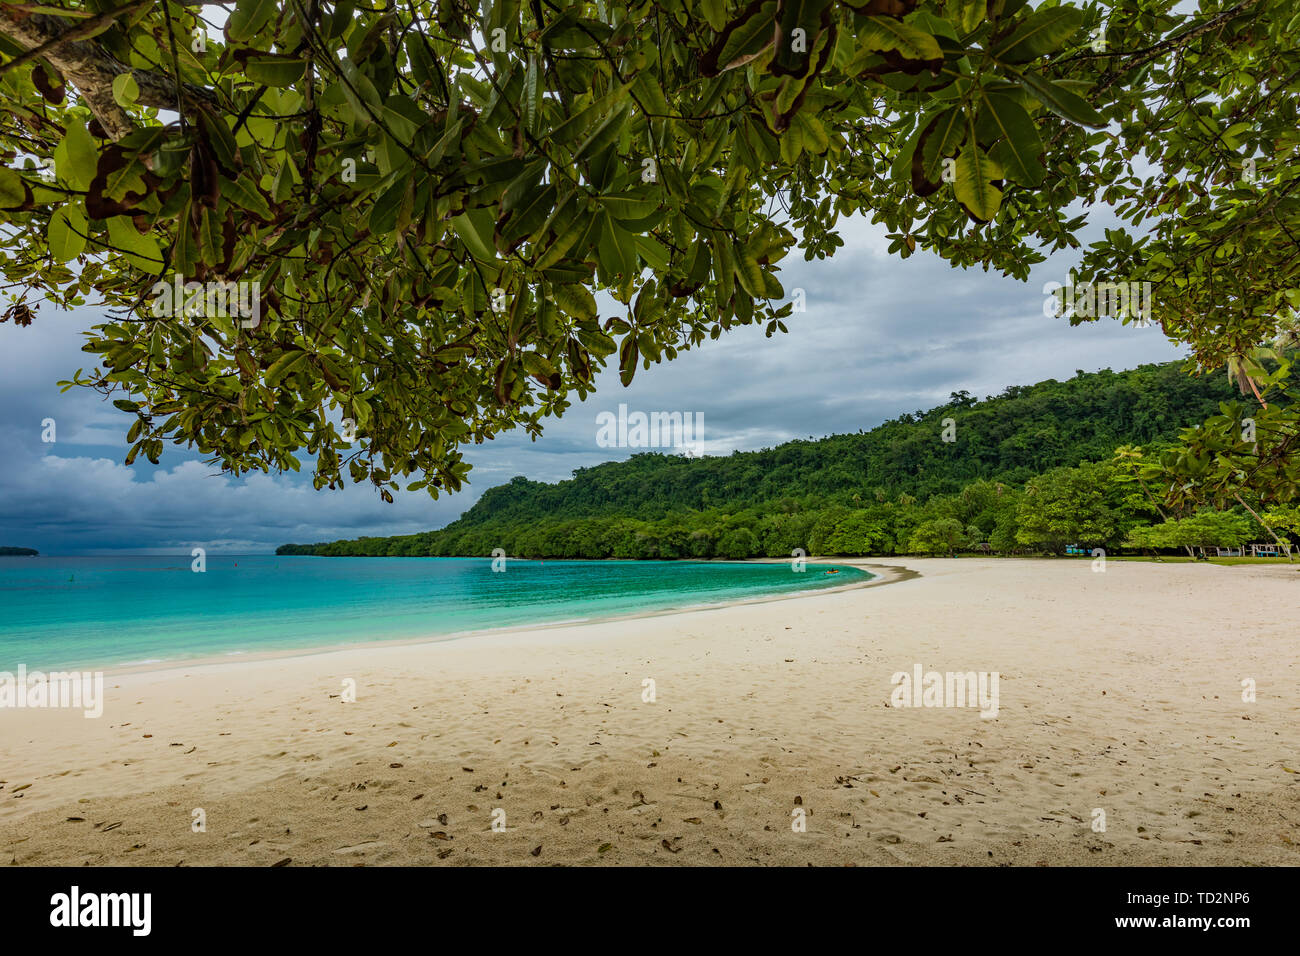 Famous Champagne Beach Vanuatu Espiritu Santo Island Near Luganville South Pacific Stock Photo Alamy